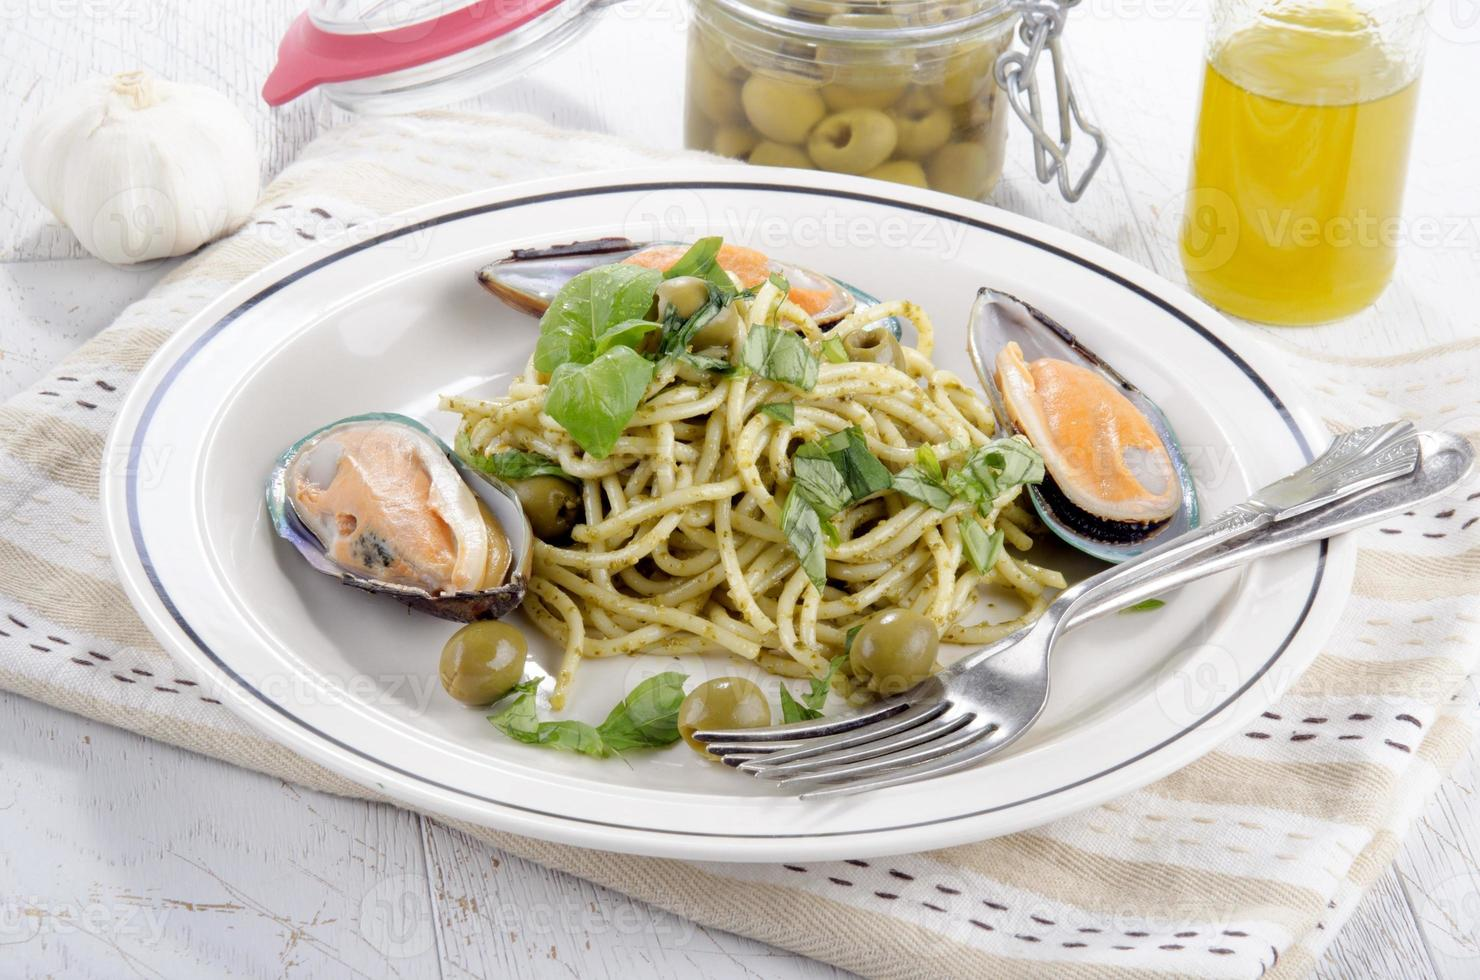 green lipped mussels with spaghetti photo